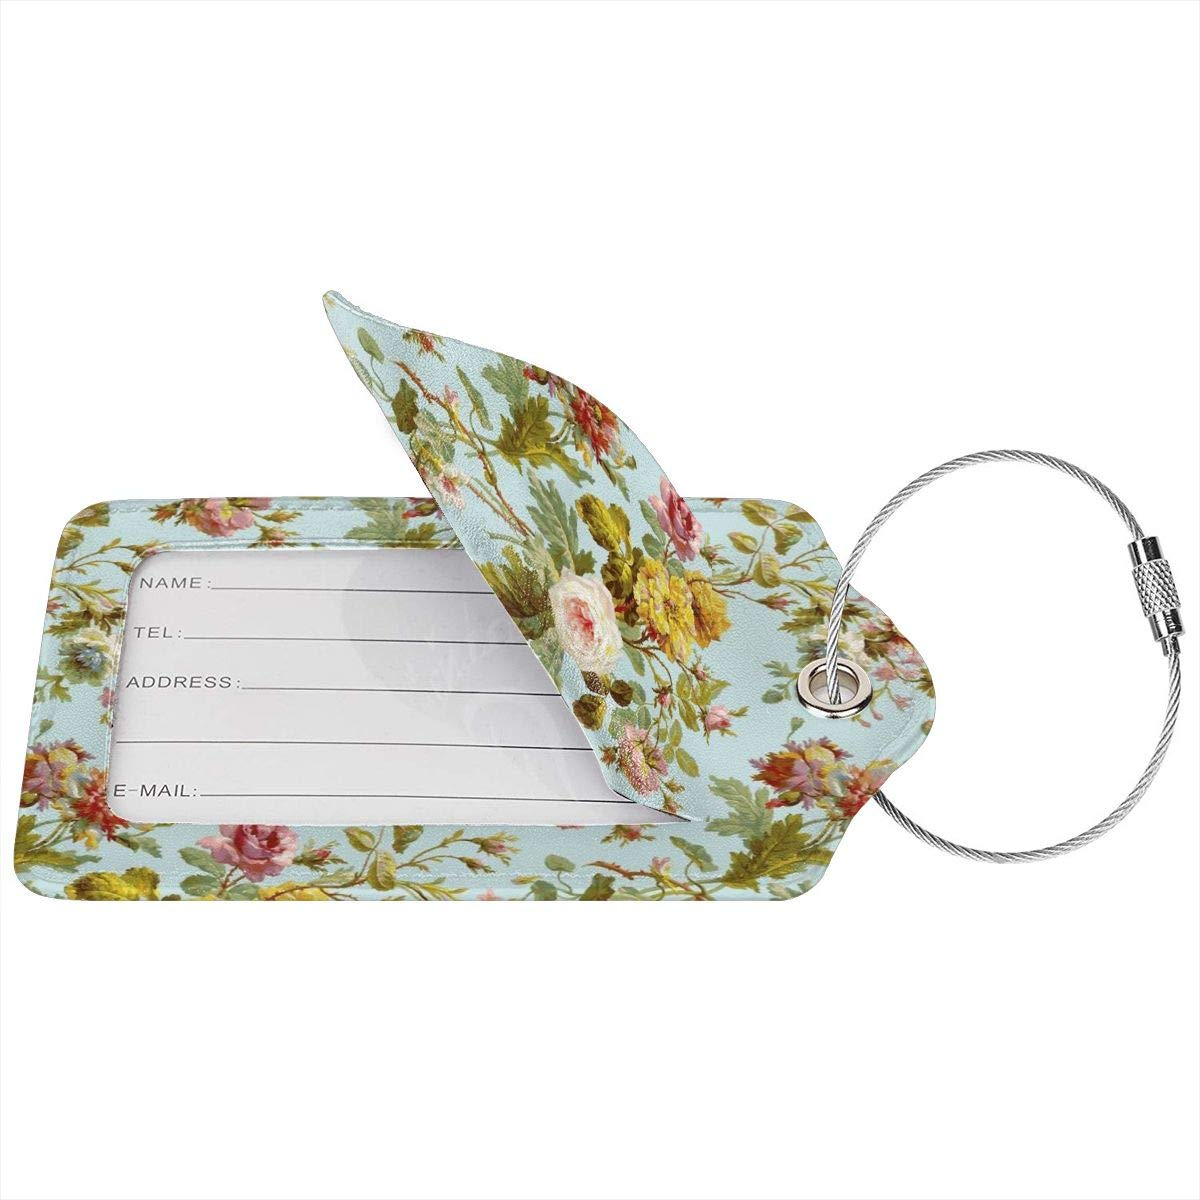 Vintage Floral Pattern Luggage Tag Label Travel Bag Label With Privacy Cover Luggage Tag Leather Personalized Suitcase Tag Travel Accessories